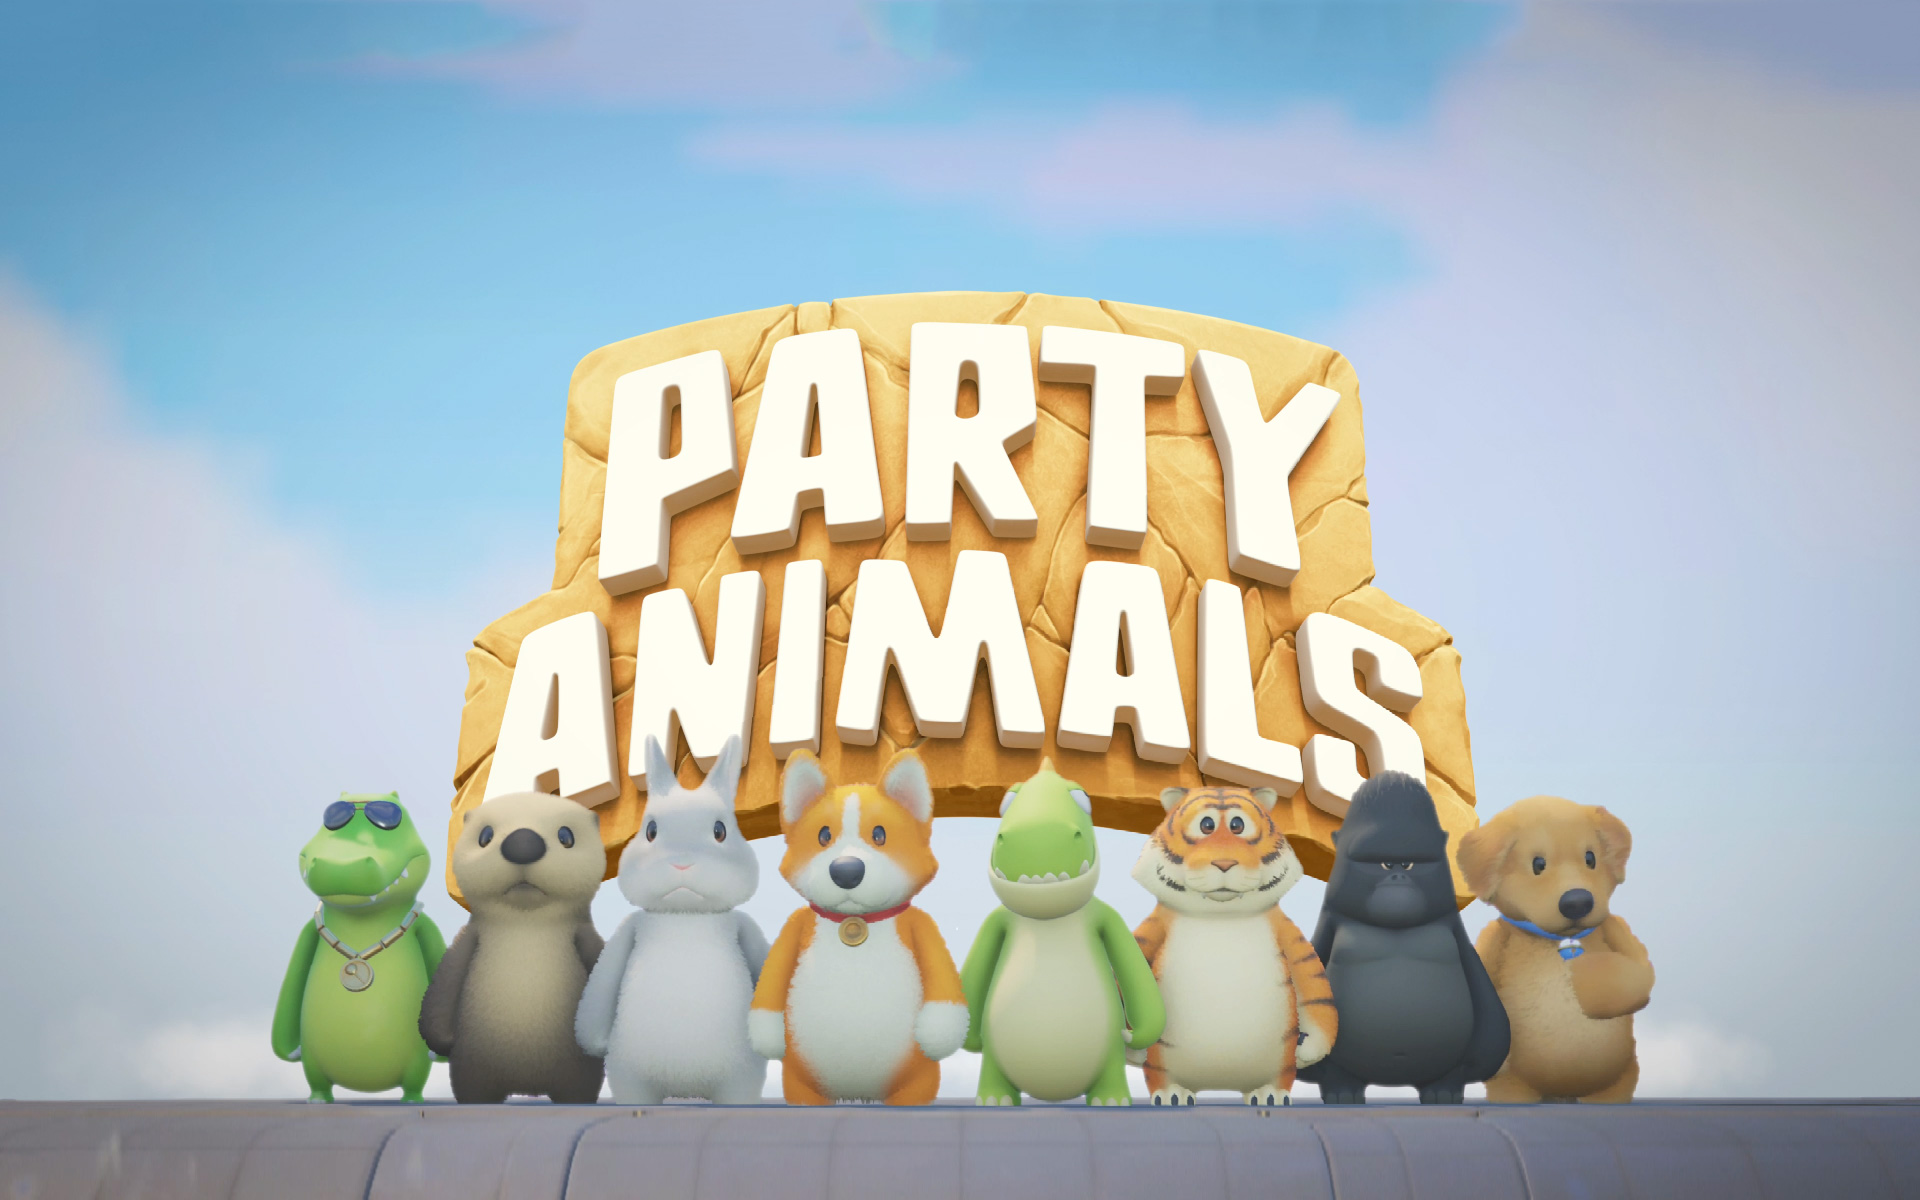 Free Party Animals Wallpaper in 1920x1200